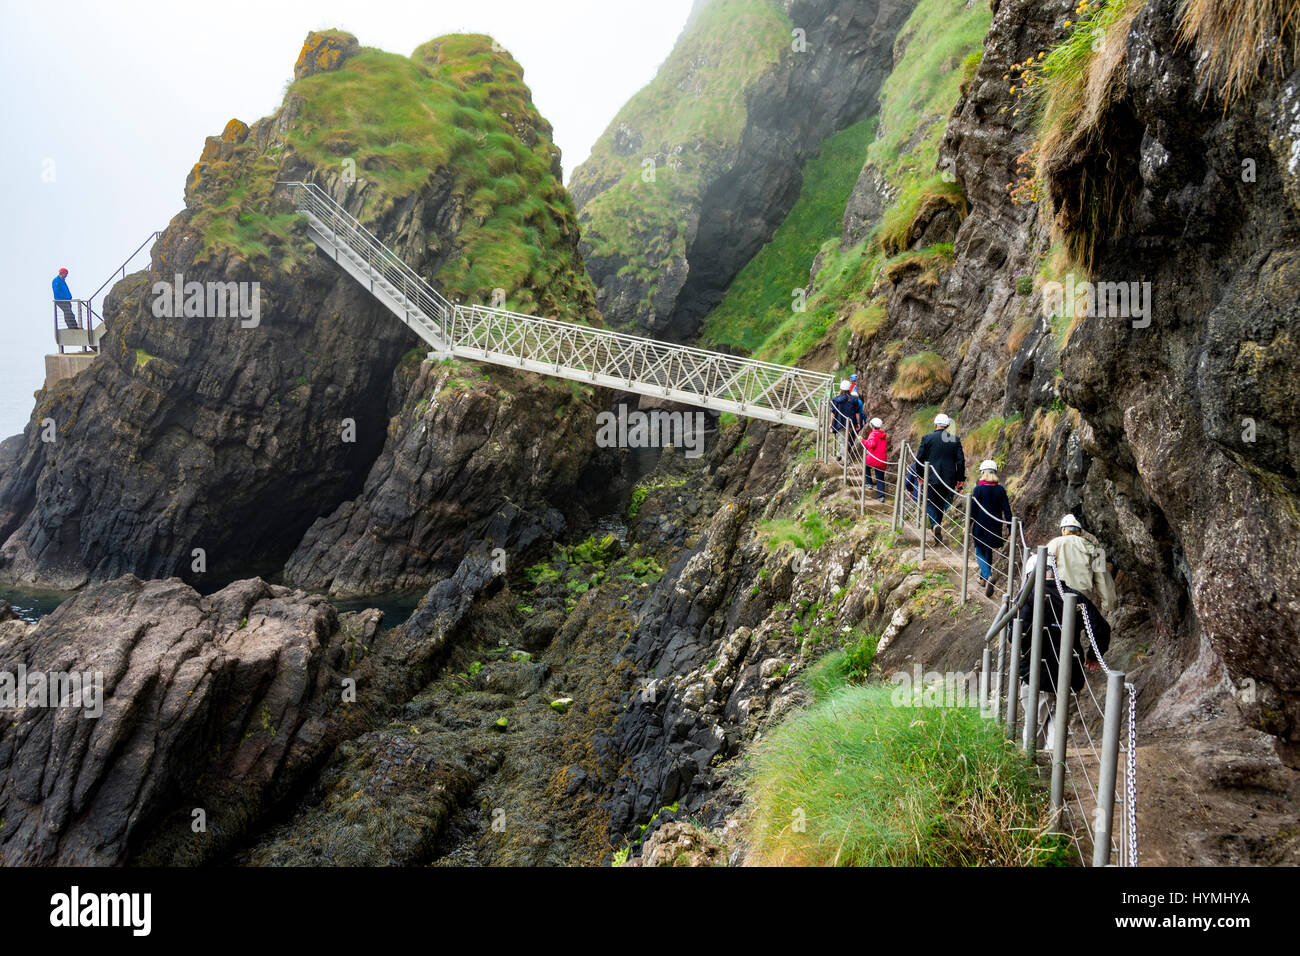 The Gobbins Cliff Path, near Islandmagee, County Antrim, Northern Ireland, UK Stock Photo